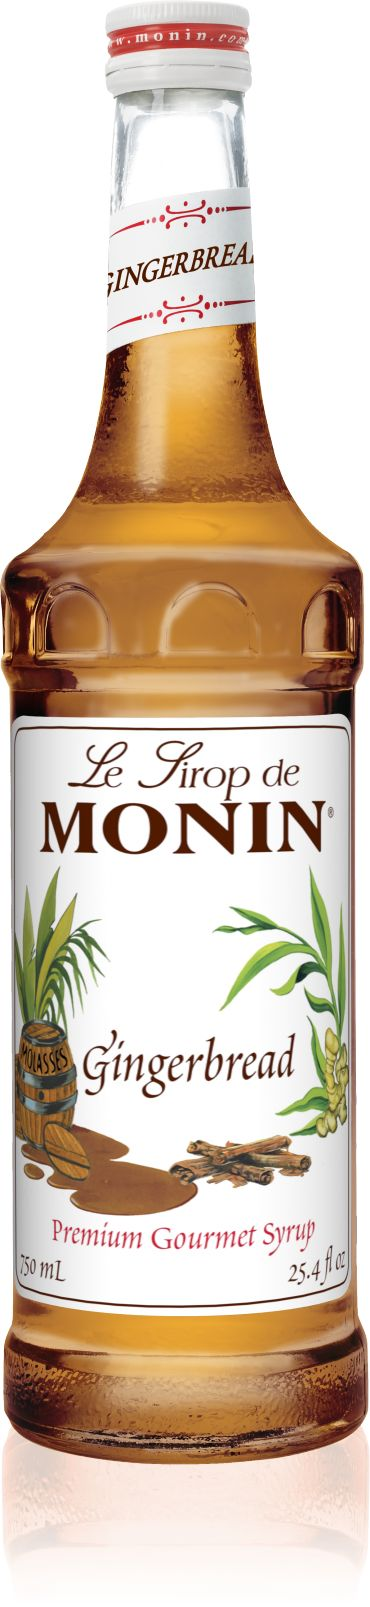 Monin Syrup - Gingerbread